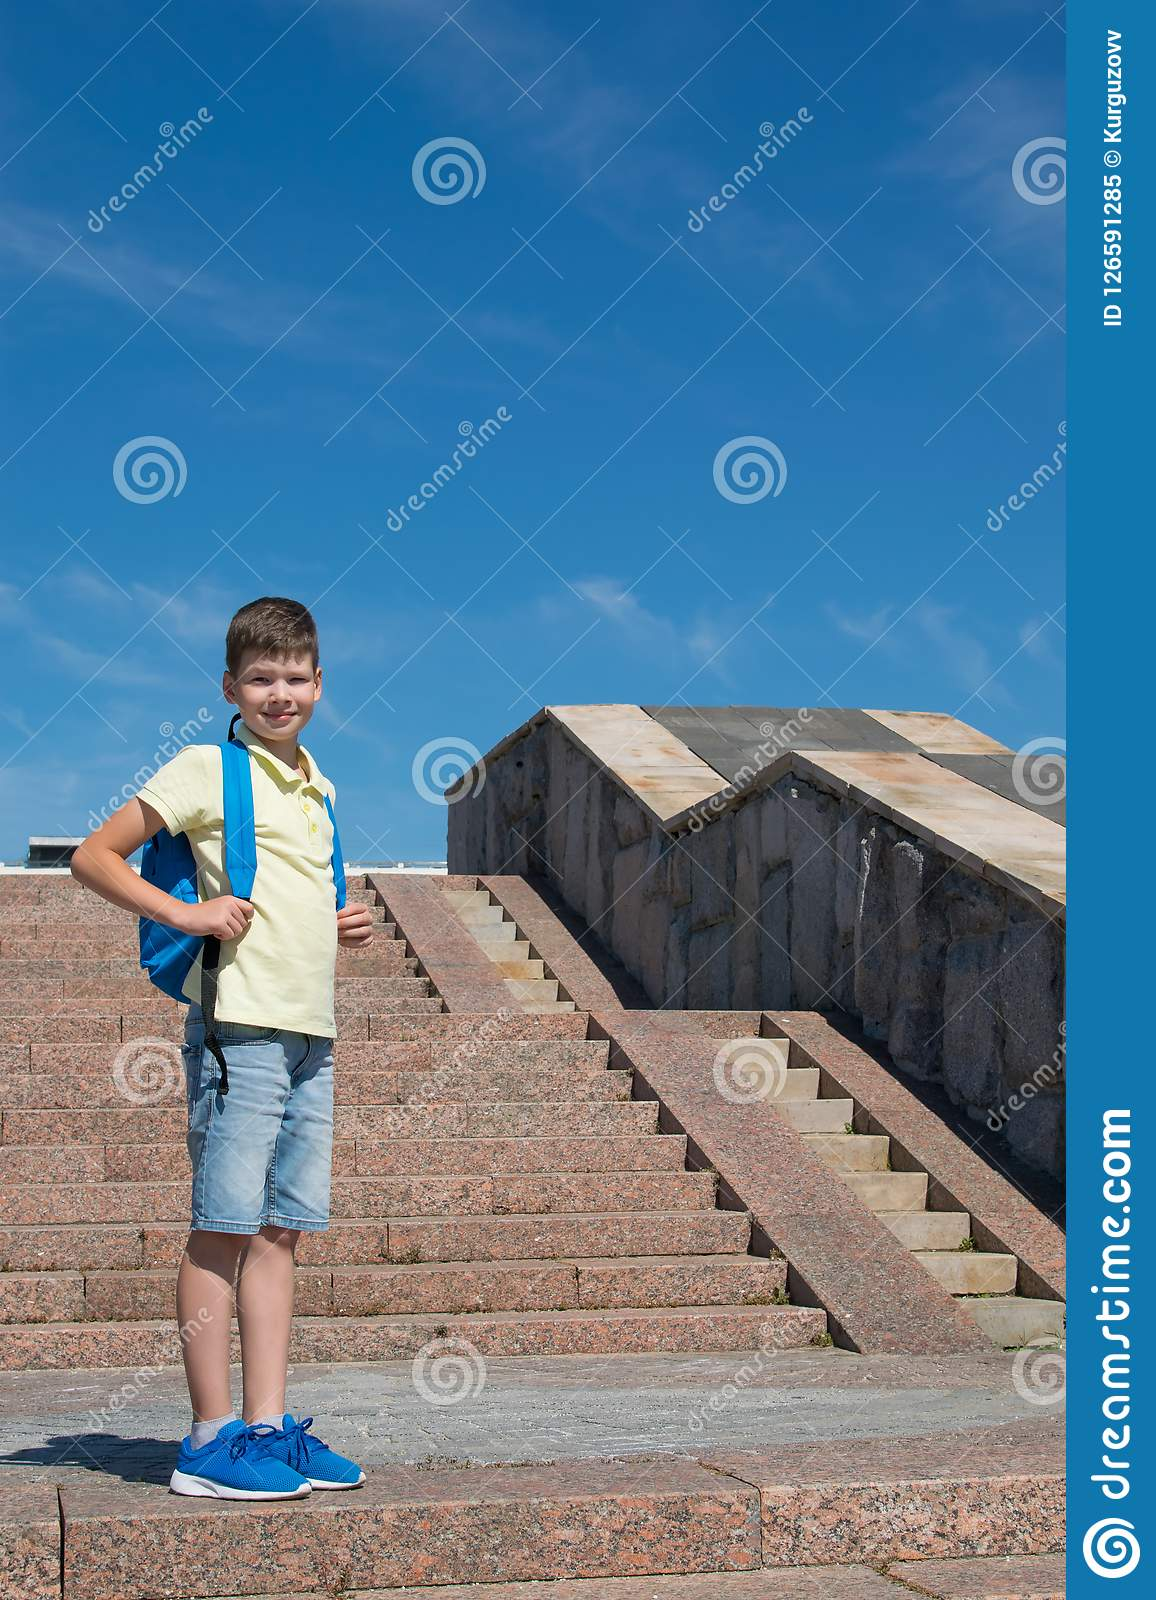 Boy with a school bag stands tall against a blue sky, to the right of the stairs. A boy with a school bag stands tall against a blue sky, to the right of the Royalty Free Stock Photo